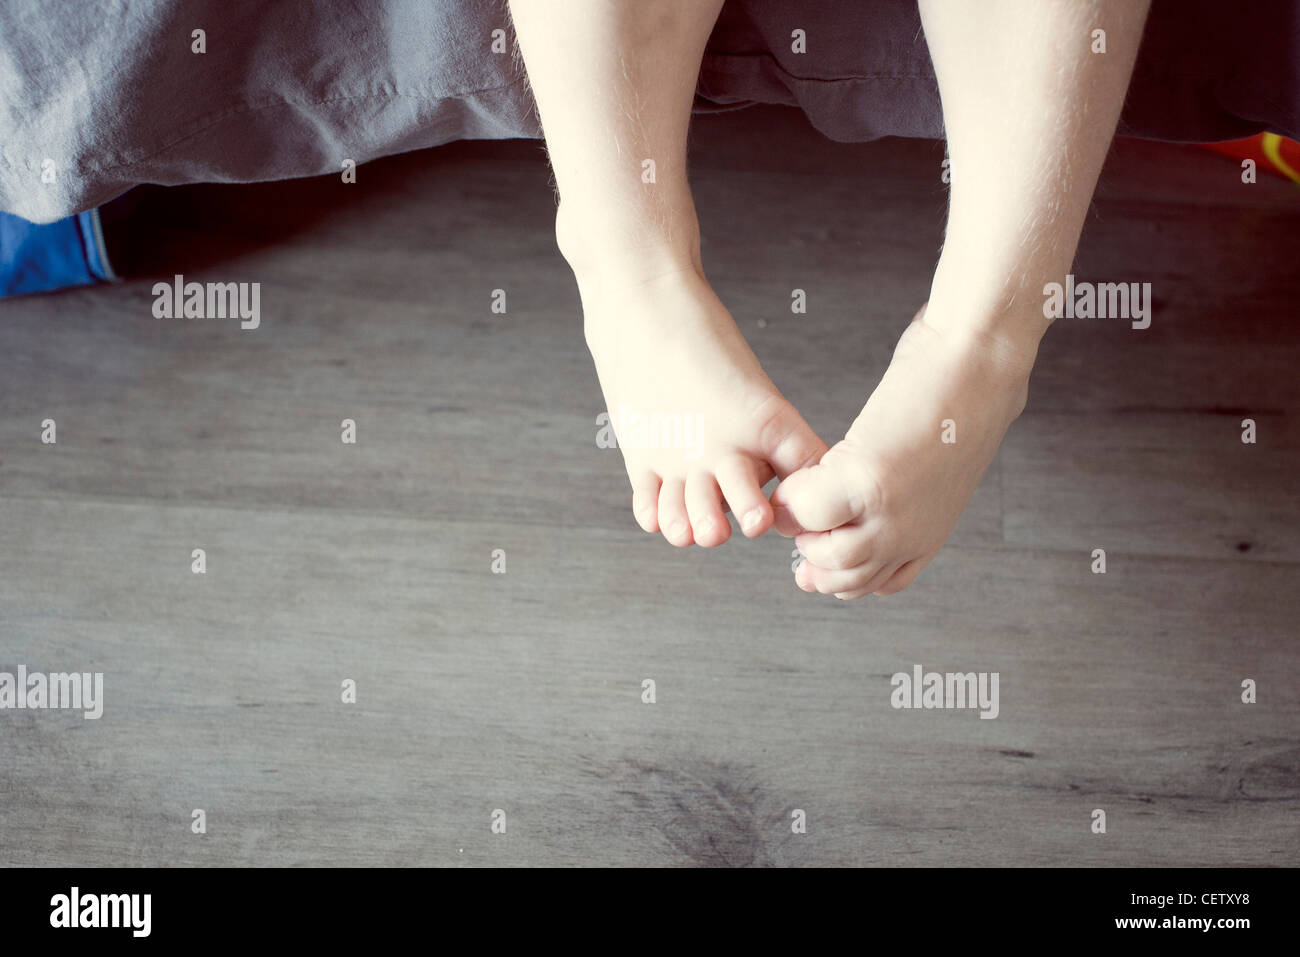 Just Feet Stock Photos & Just Feet Stock Images - Alamy